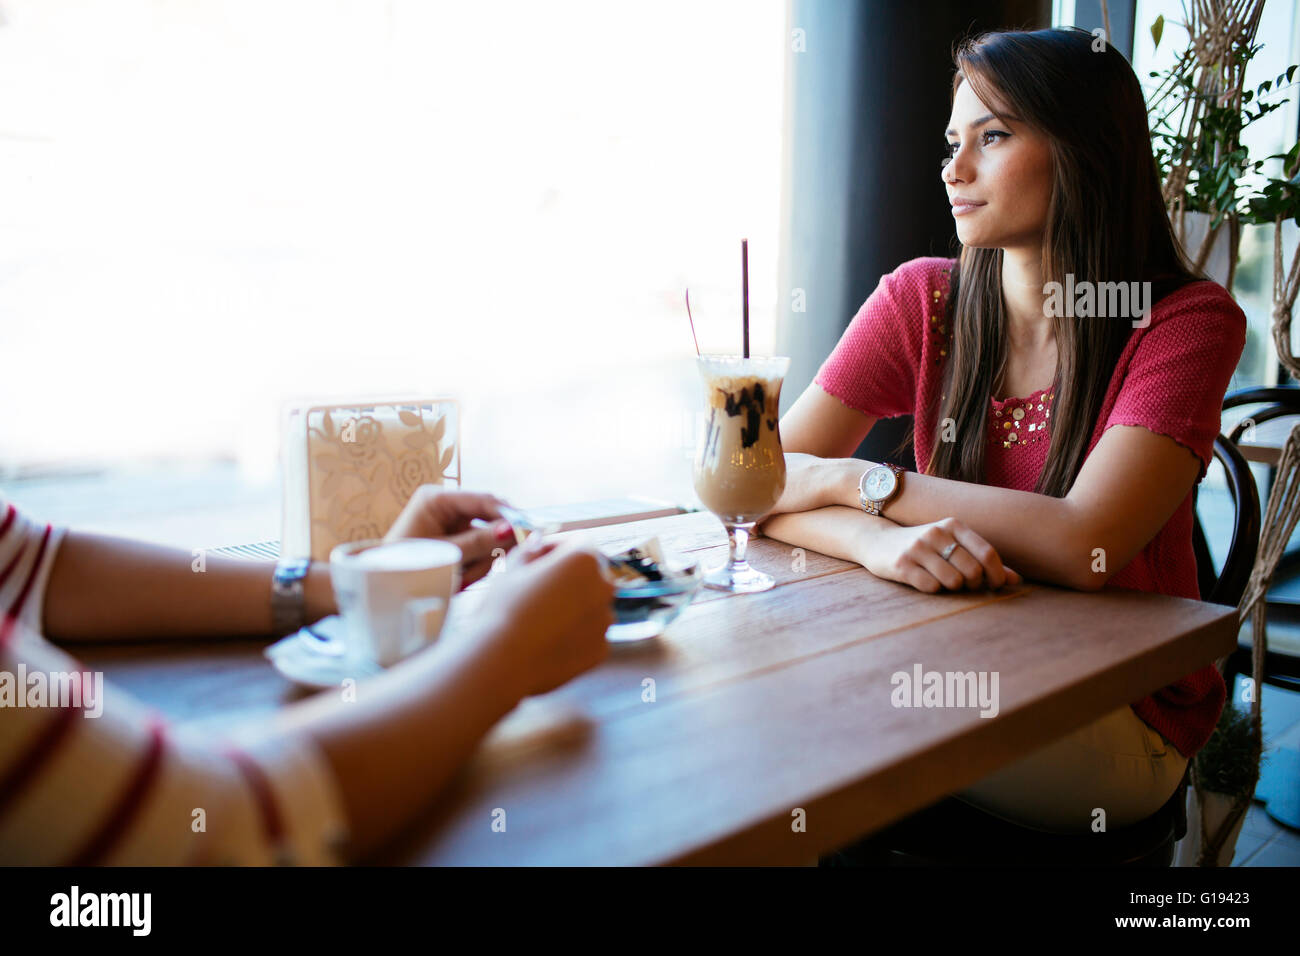 Beautiful woman talking to friend in restaurant while drinking coffee - Stock Image